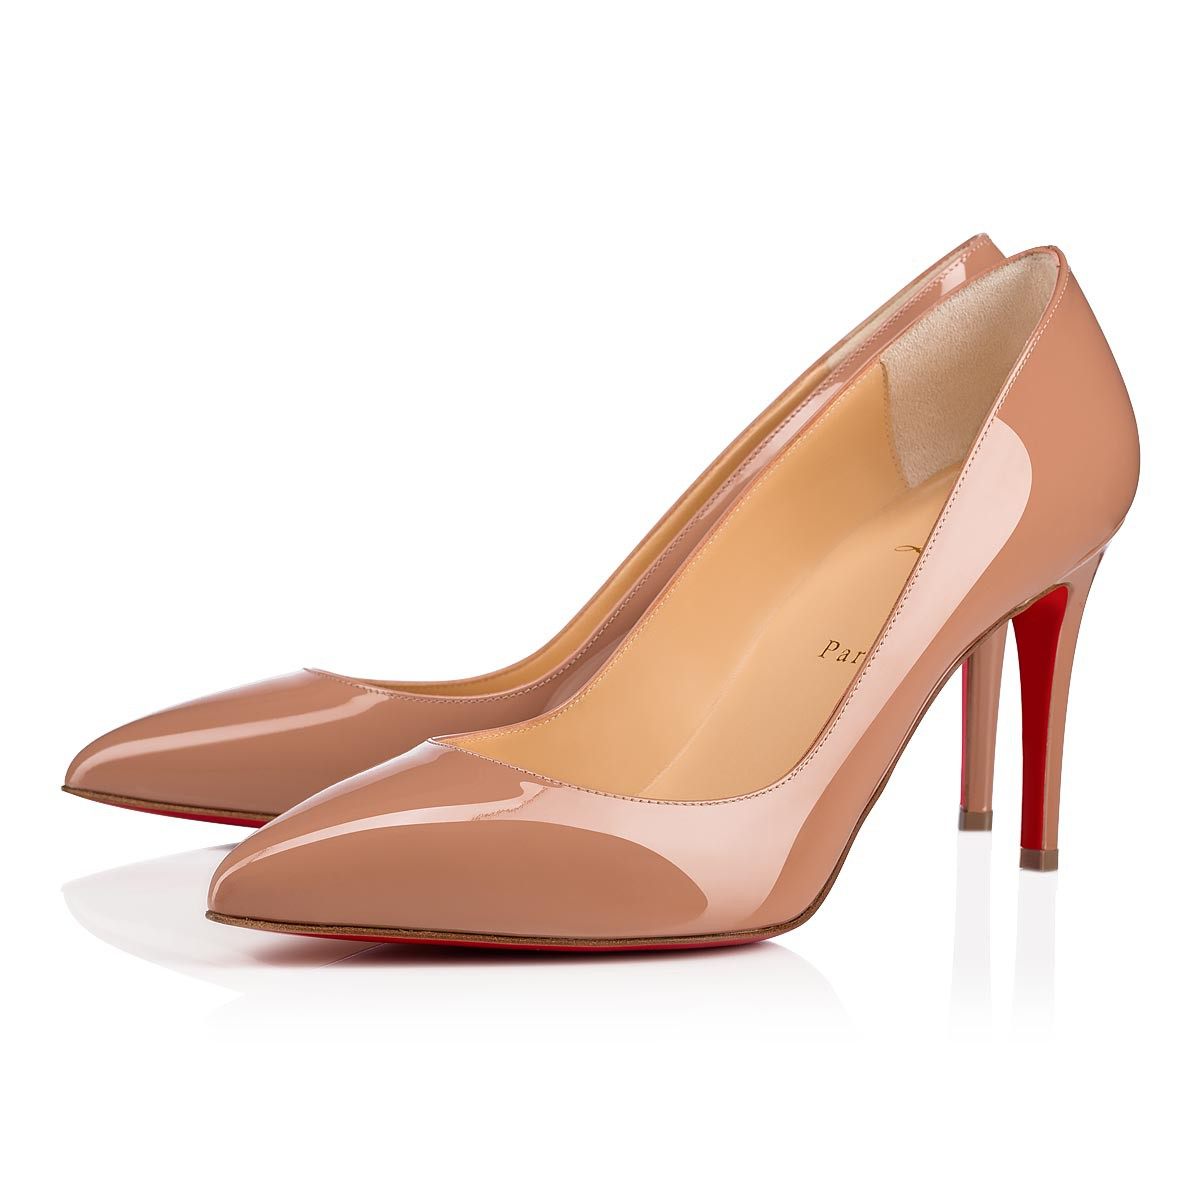 the best attitude c9361 189ca PIGALLE 85 Nude 6248 Patent - Women Shoes - Christian Louboutin